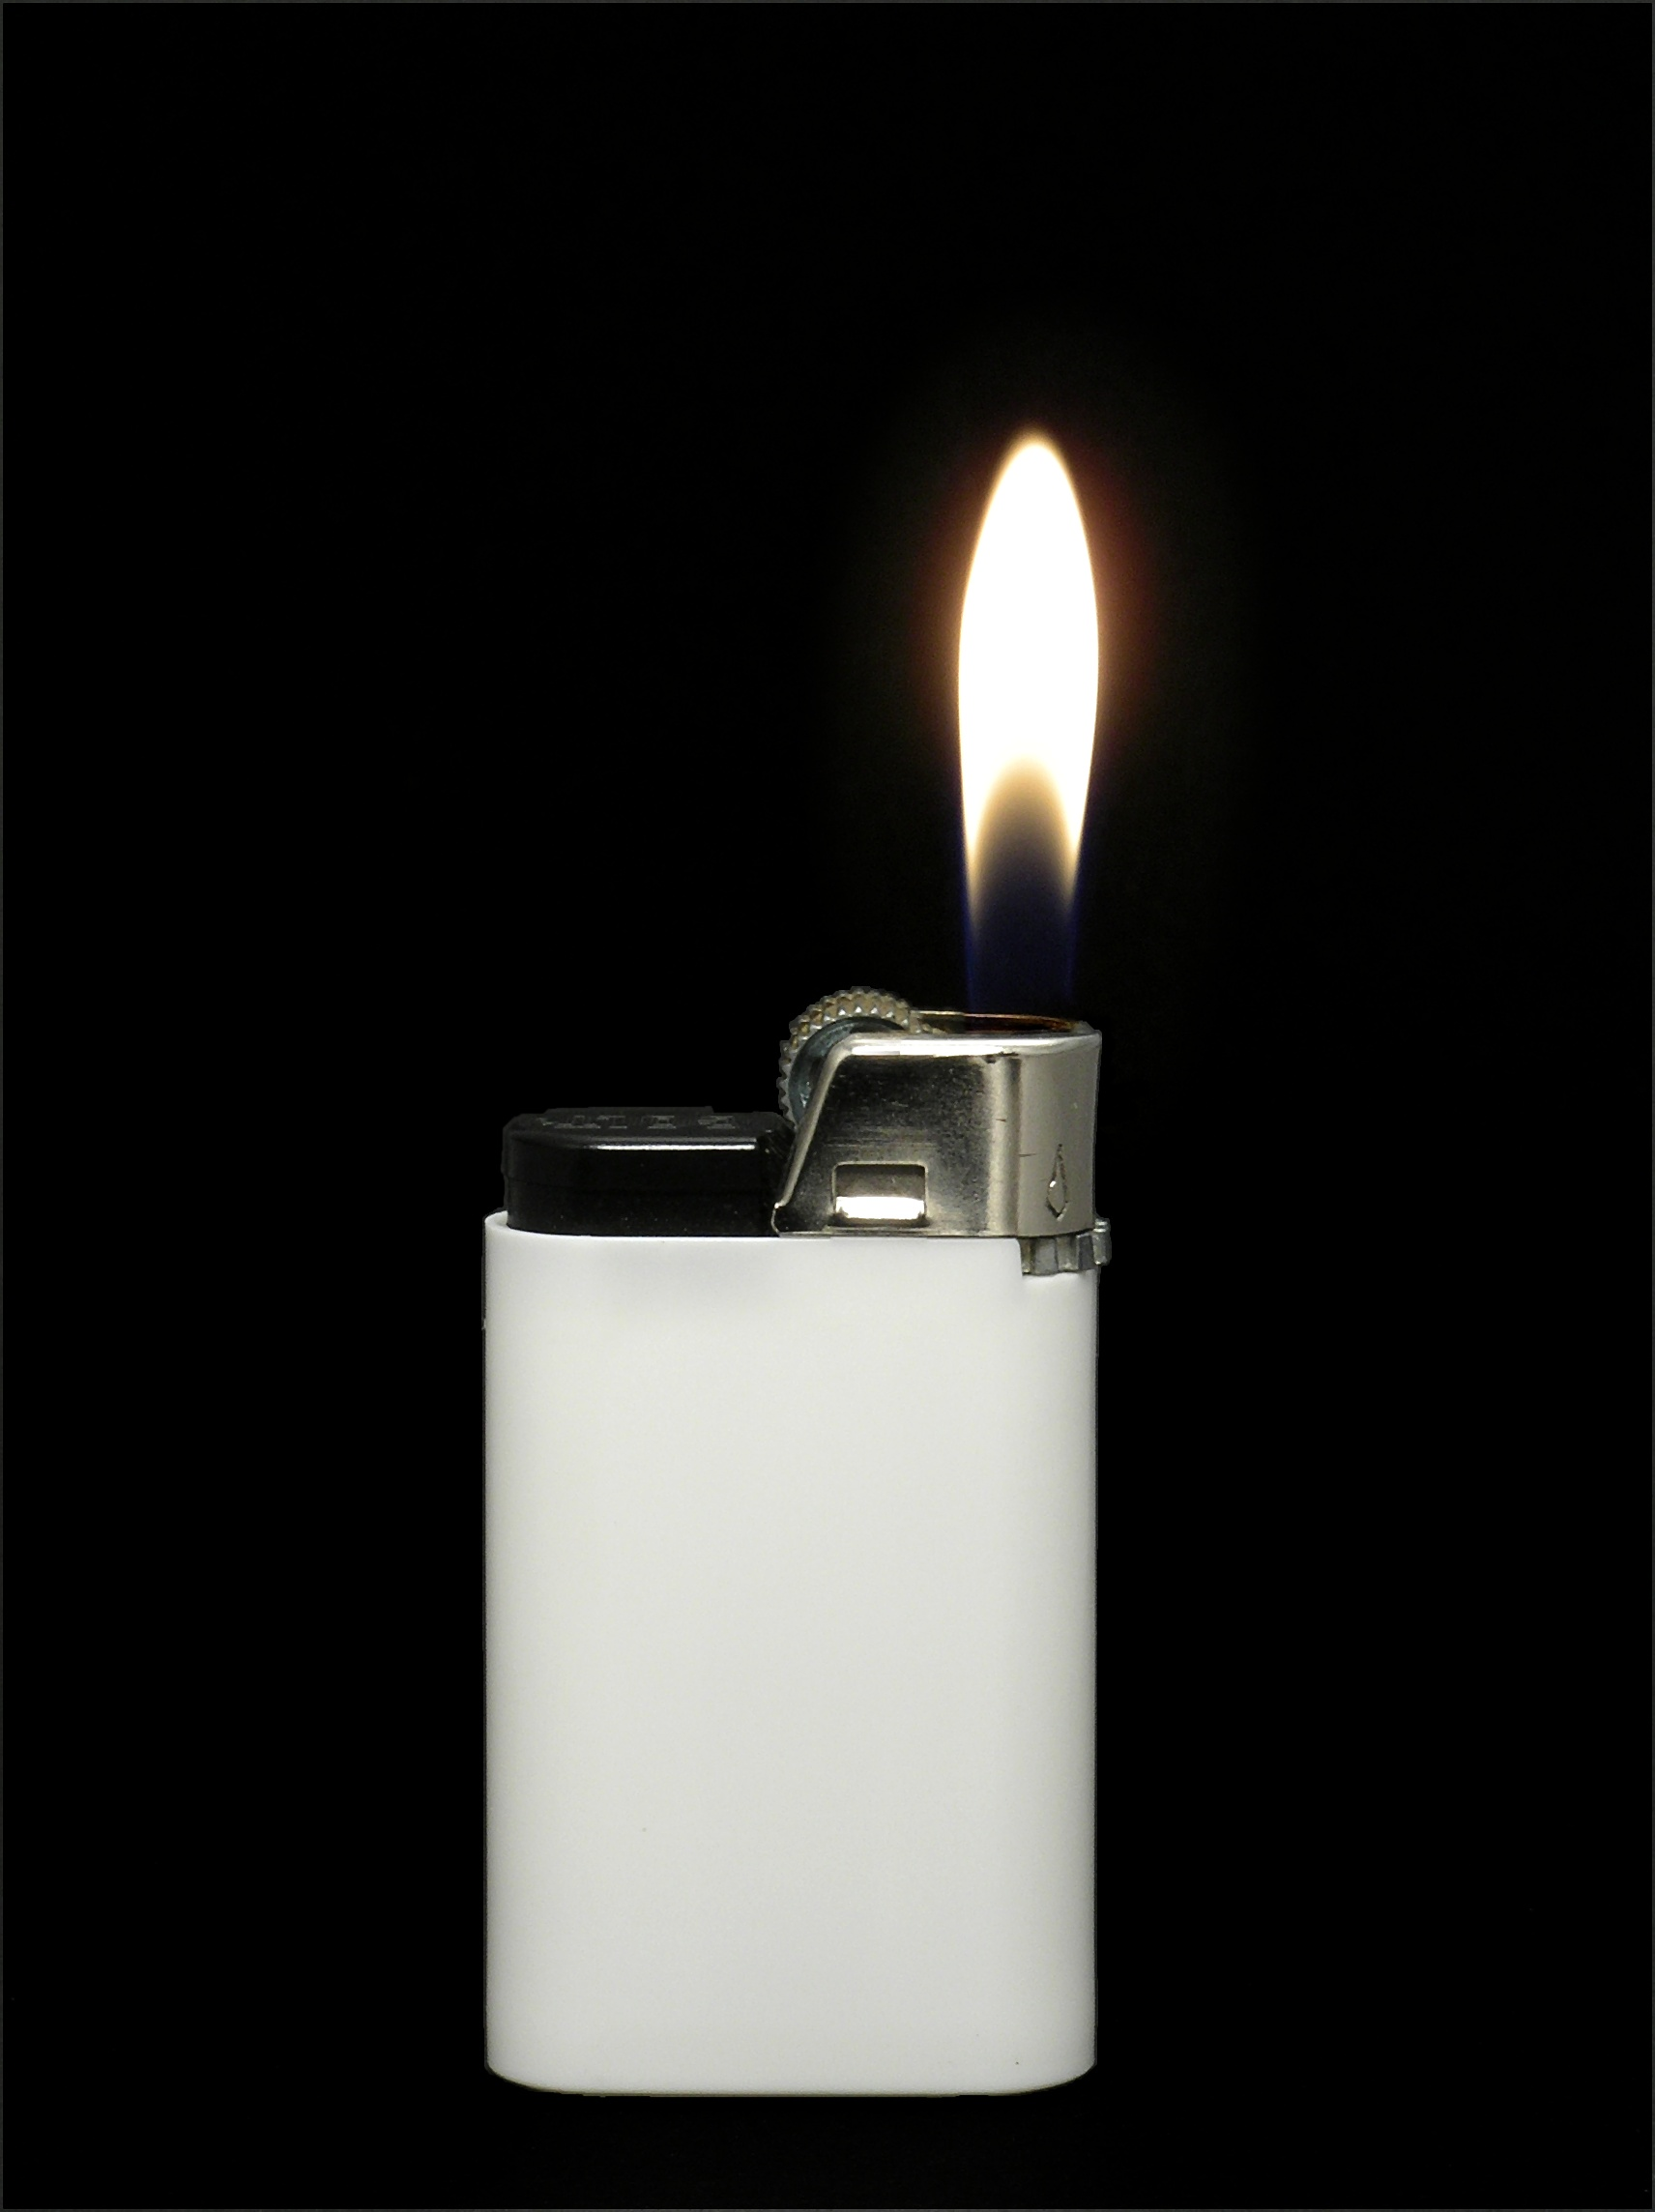 [Image: White_lighter_with_flame.JPG]